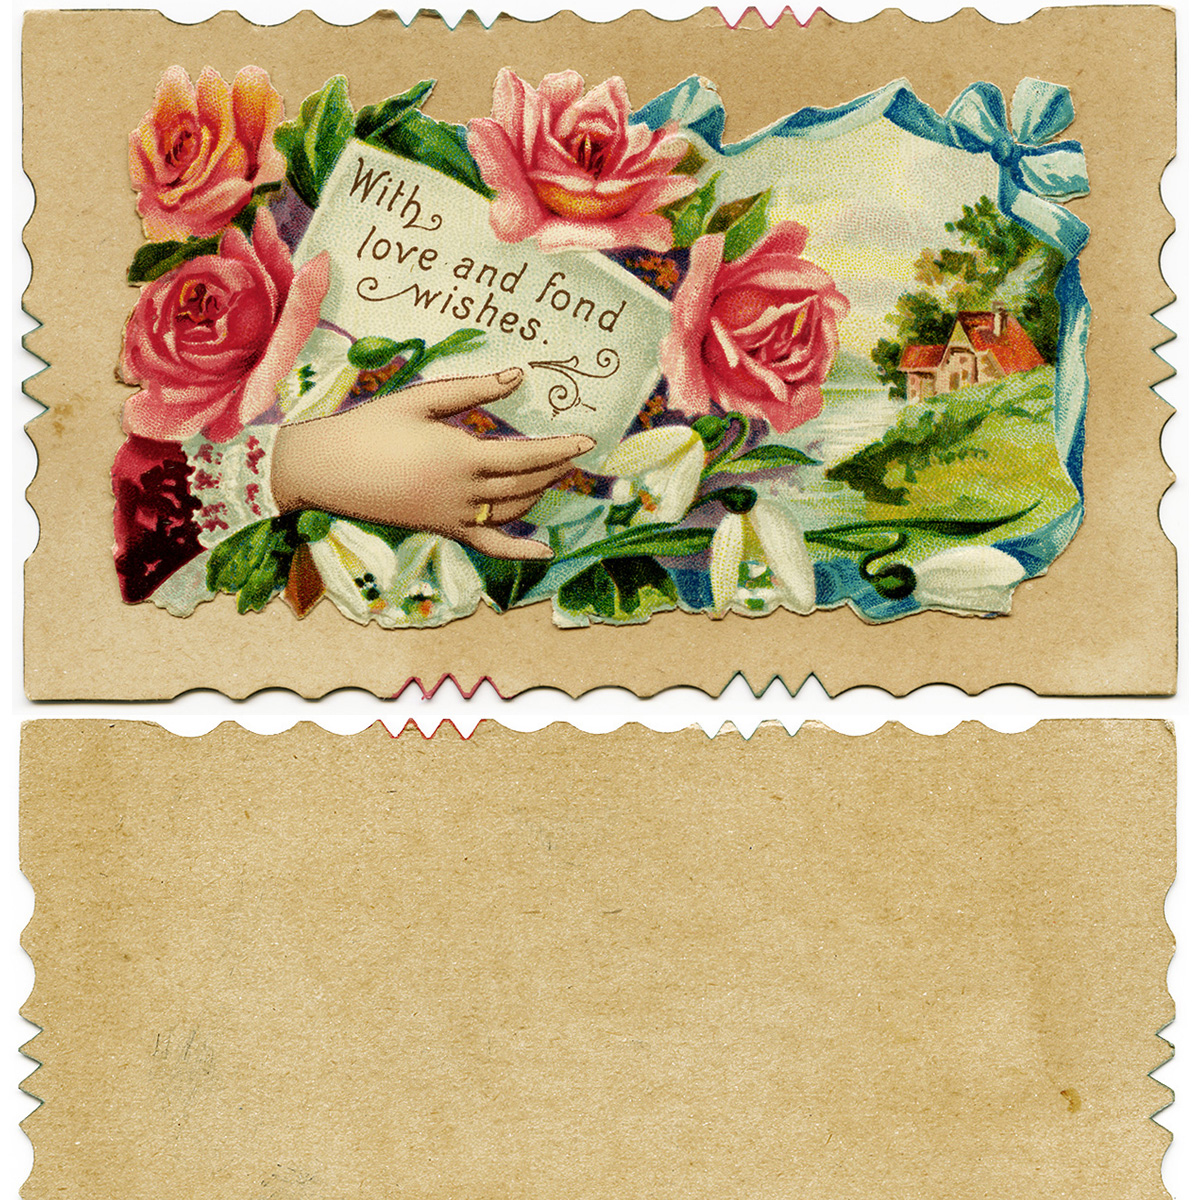 Victorian calling card, vintage ephemera, old fashioned card, floral digital graphics, free printable image